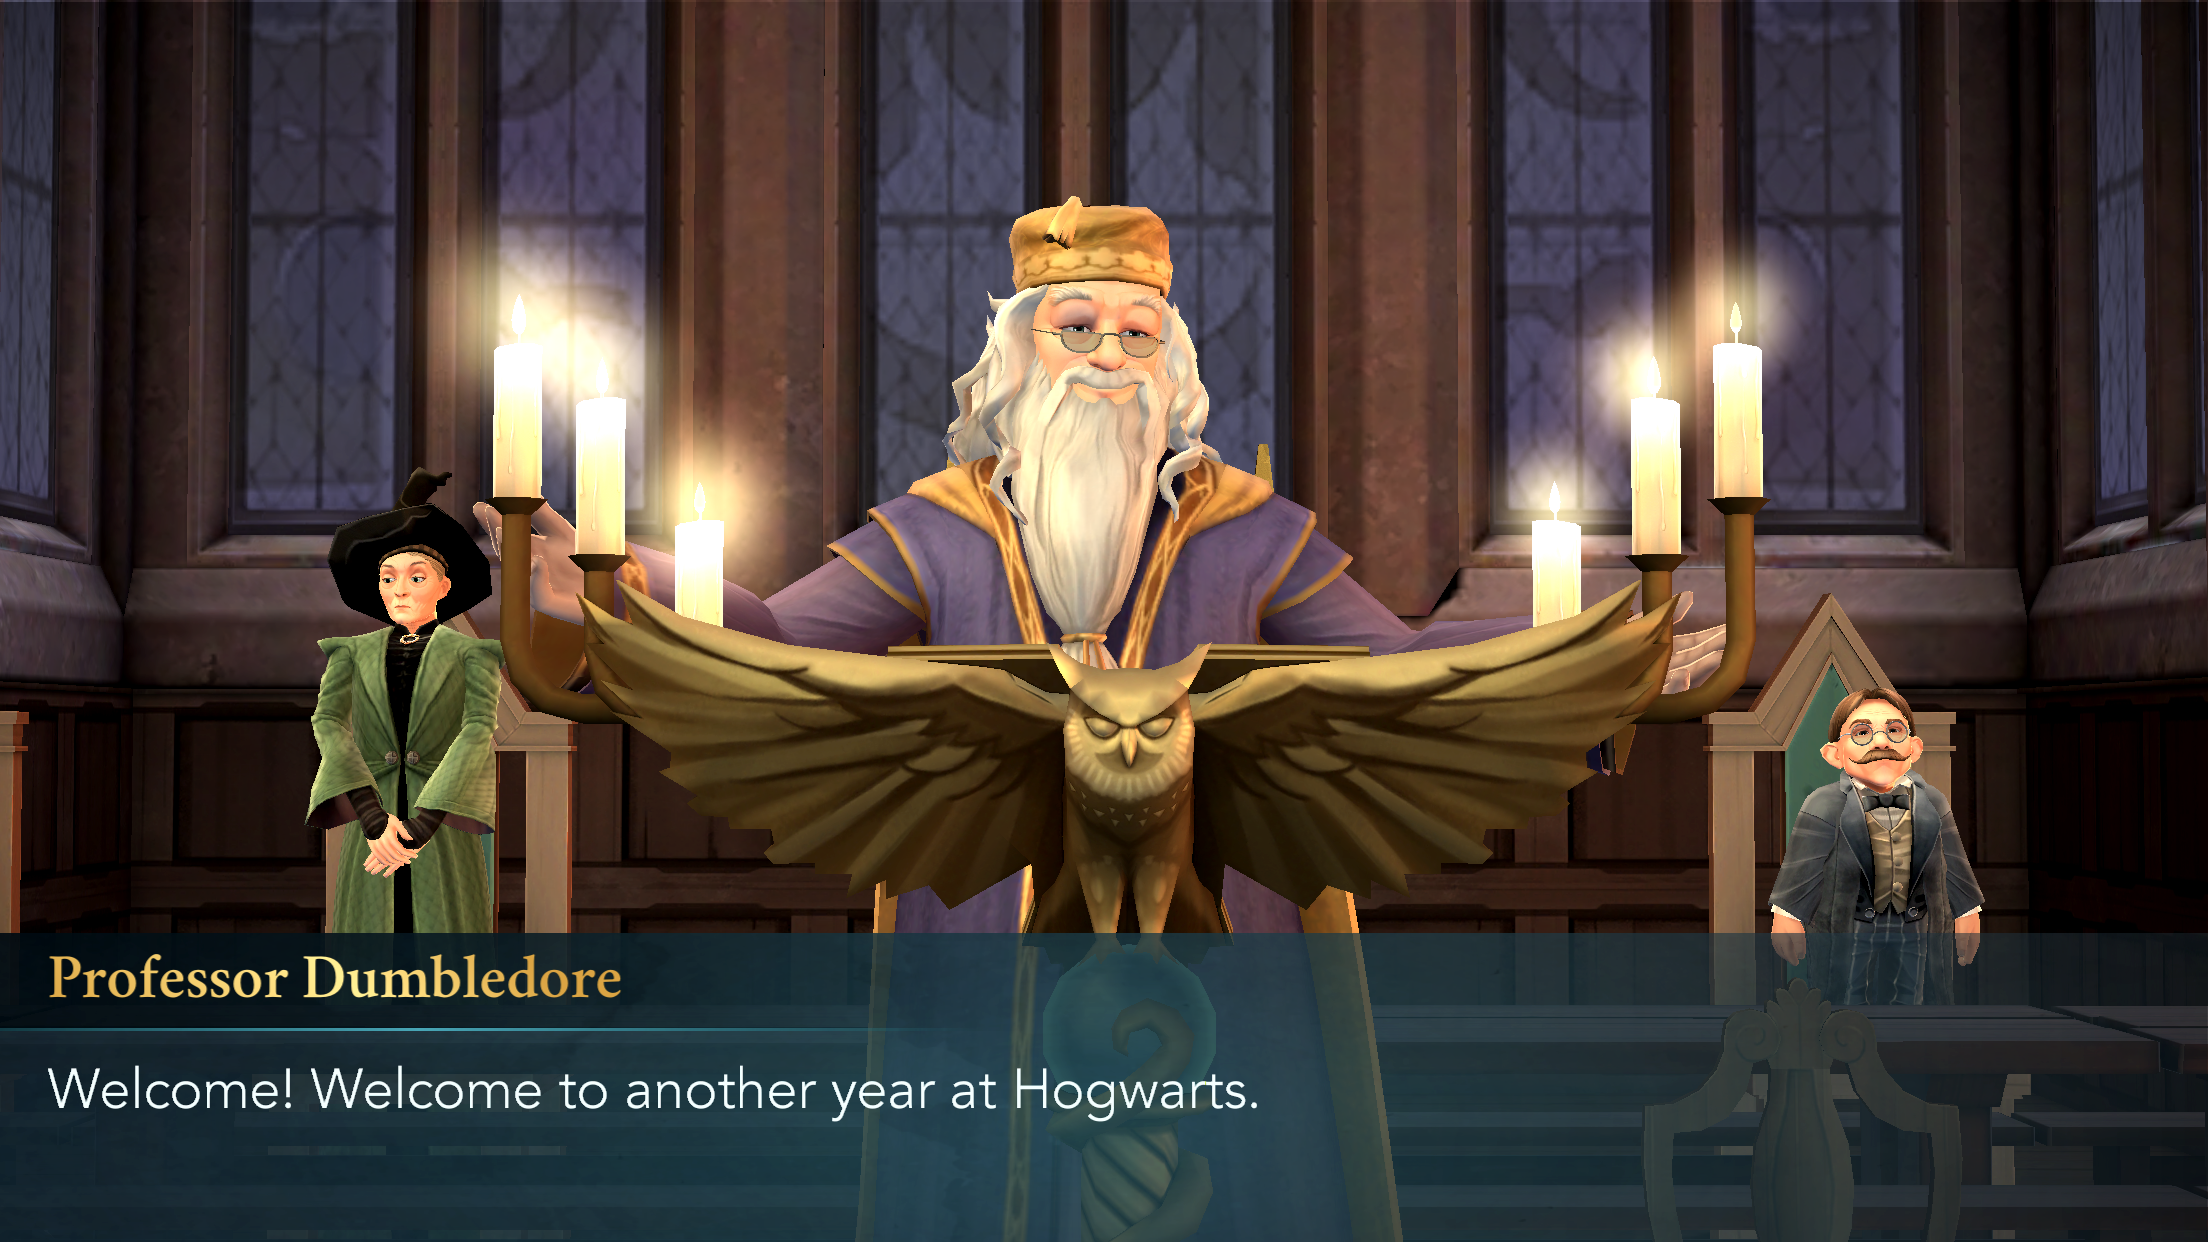 Today Players Can Head Back To School In The Mobile Game Harry Potter Hogwarts Mystery With Commencement Of Year 5 Content Beginning